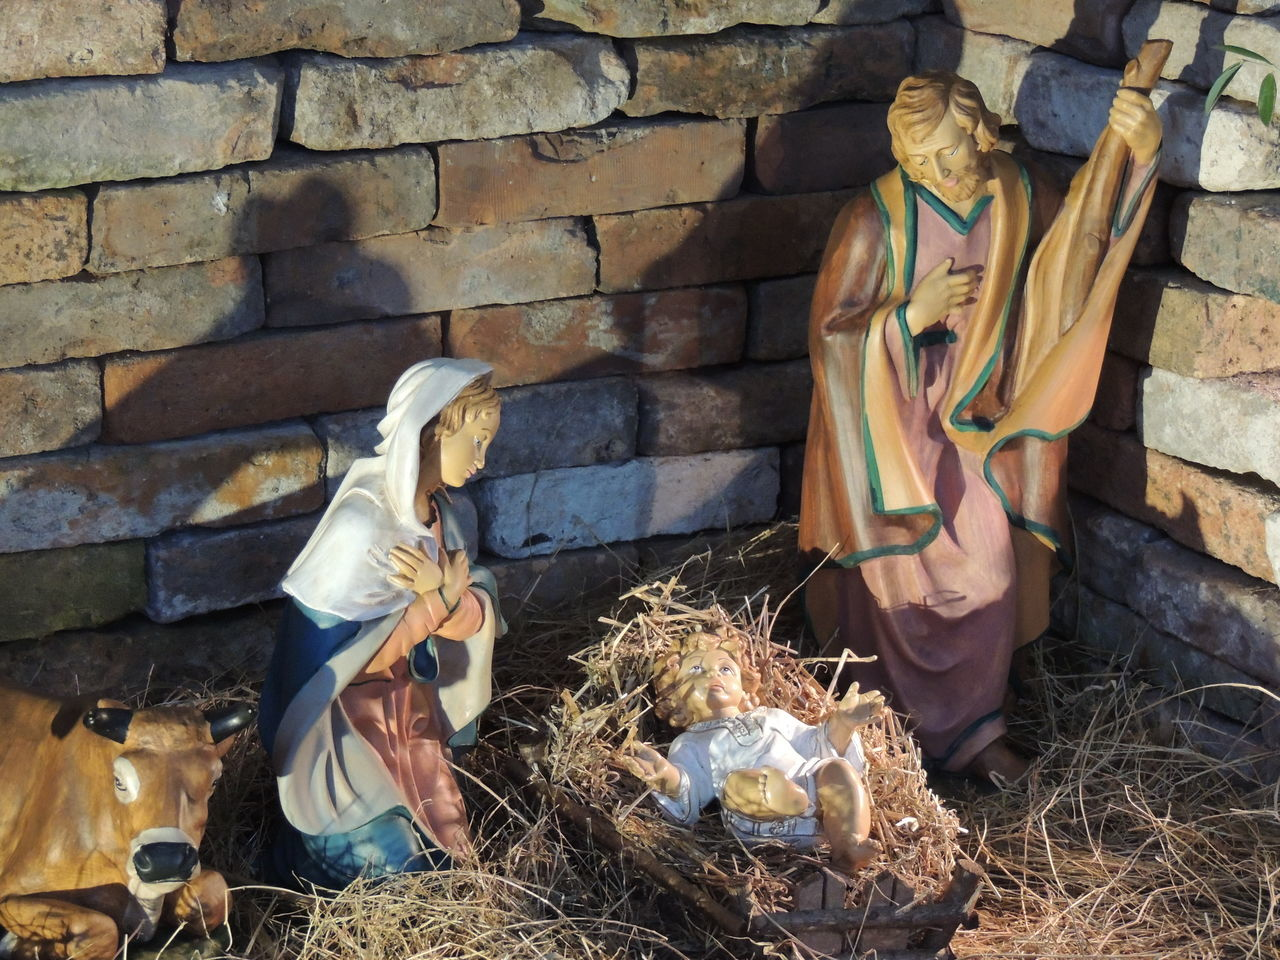 Day Natividad Natividade Nativity Nativity Scene NativityScene No People Outdoors Presepe Presepio Presépio Natal Scene Scenics Working